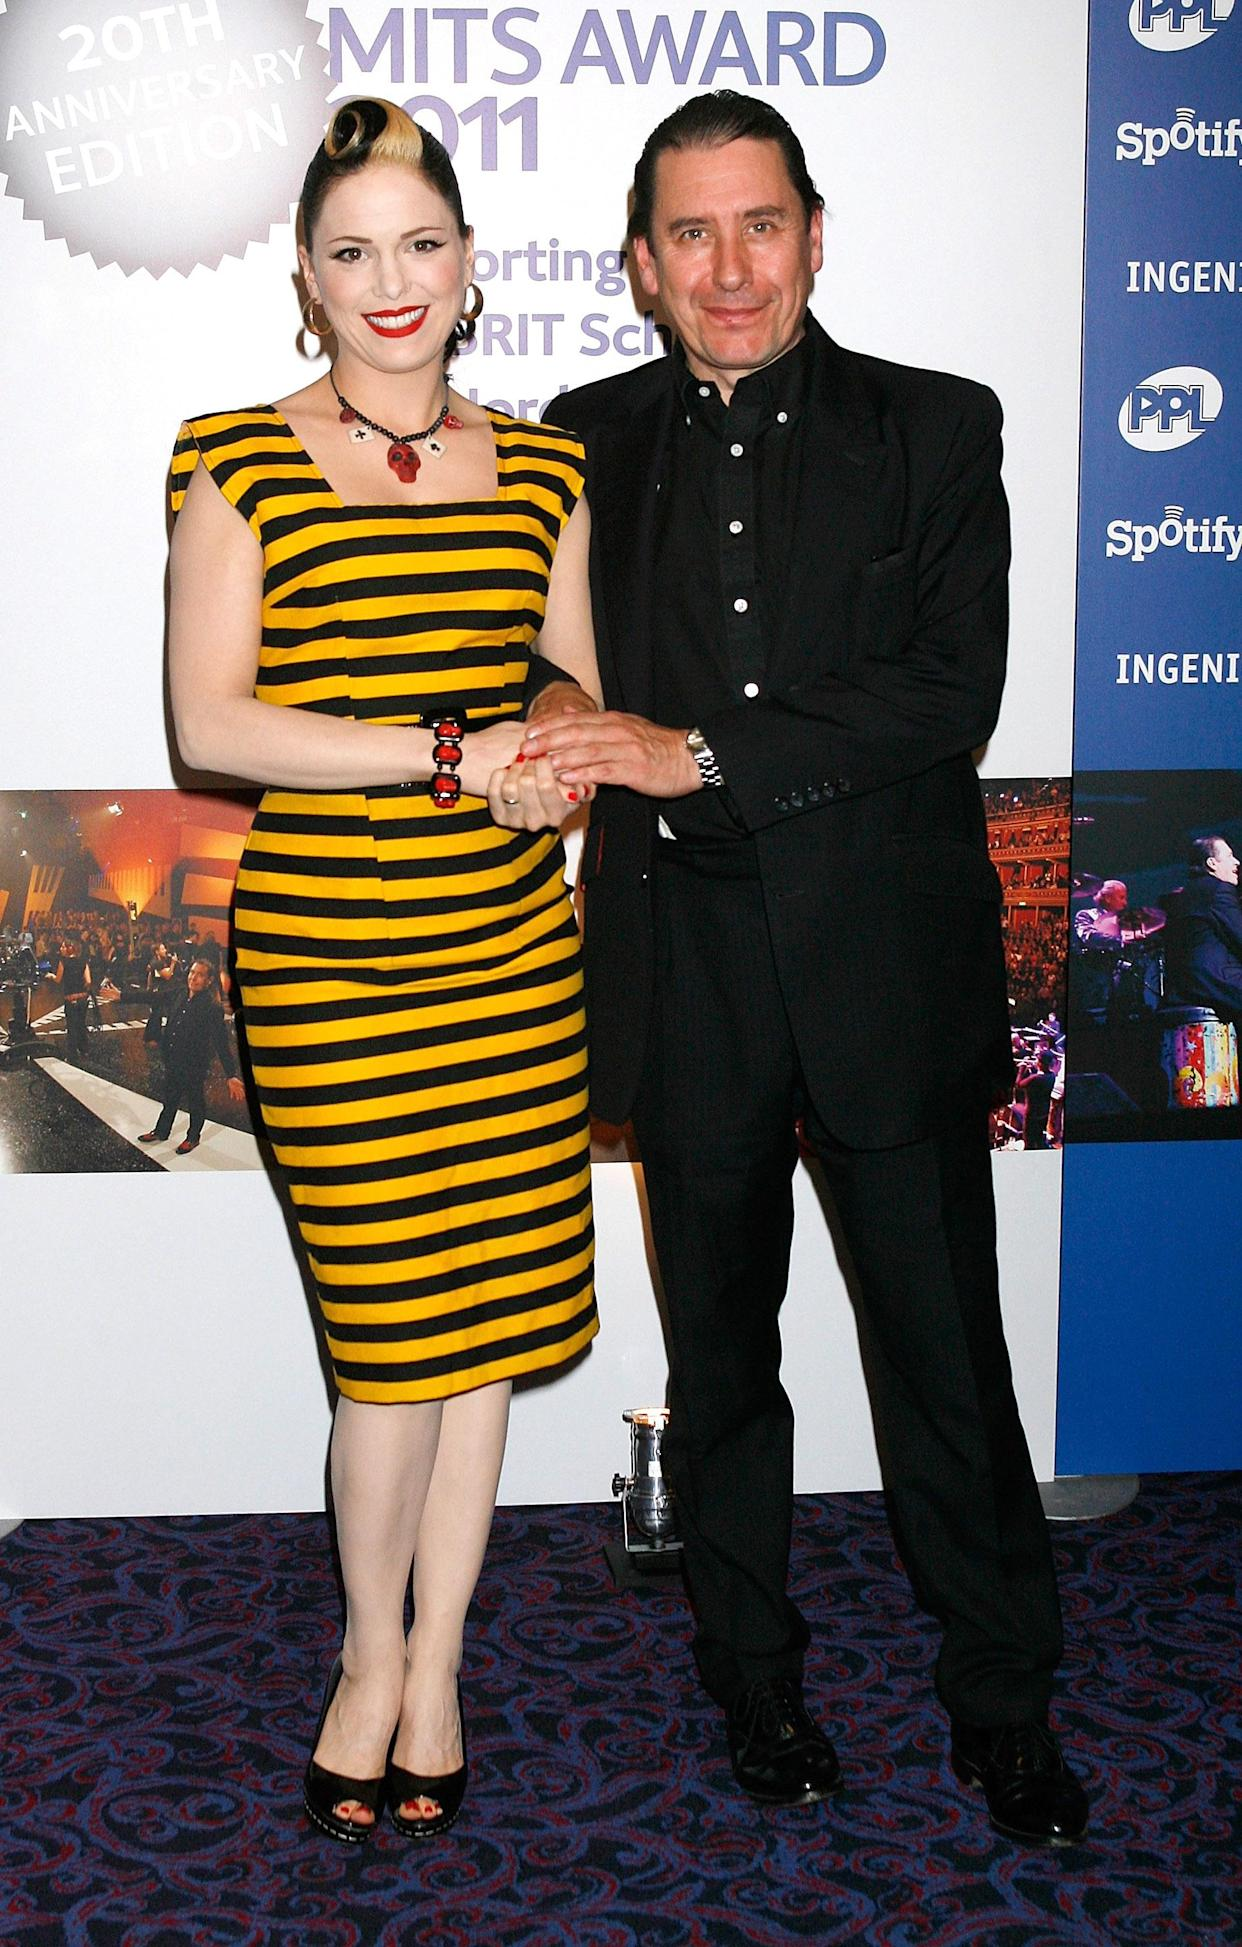 Imelda May and Jools Holland arrive at the Music Industry Awards at the Grosvenor House Hotel in London